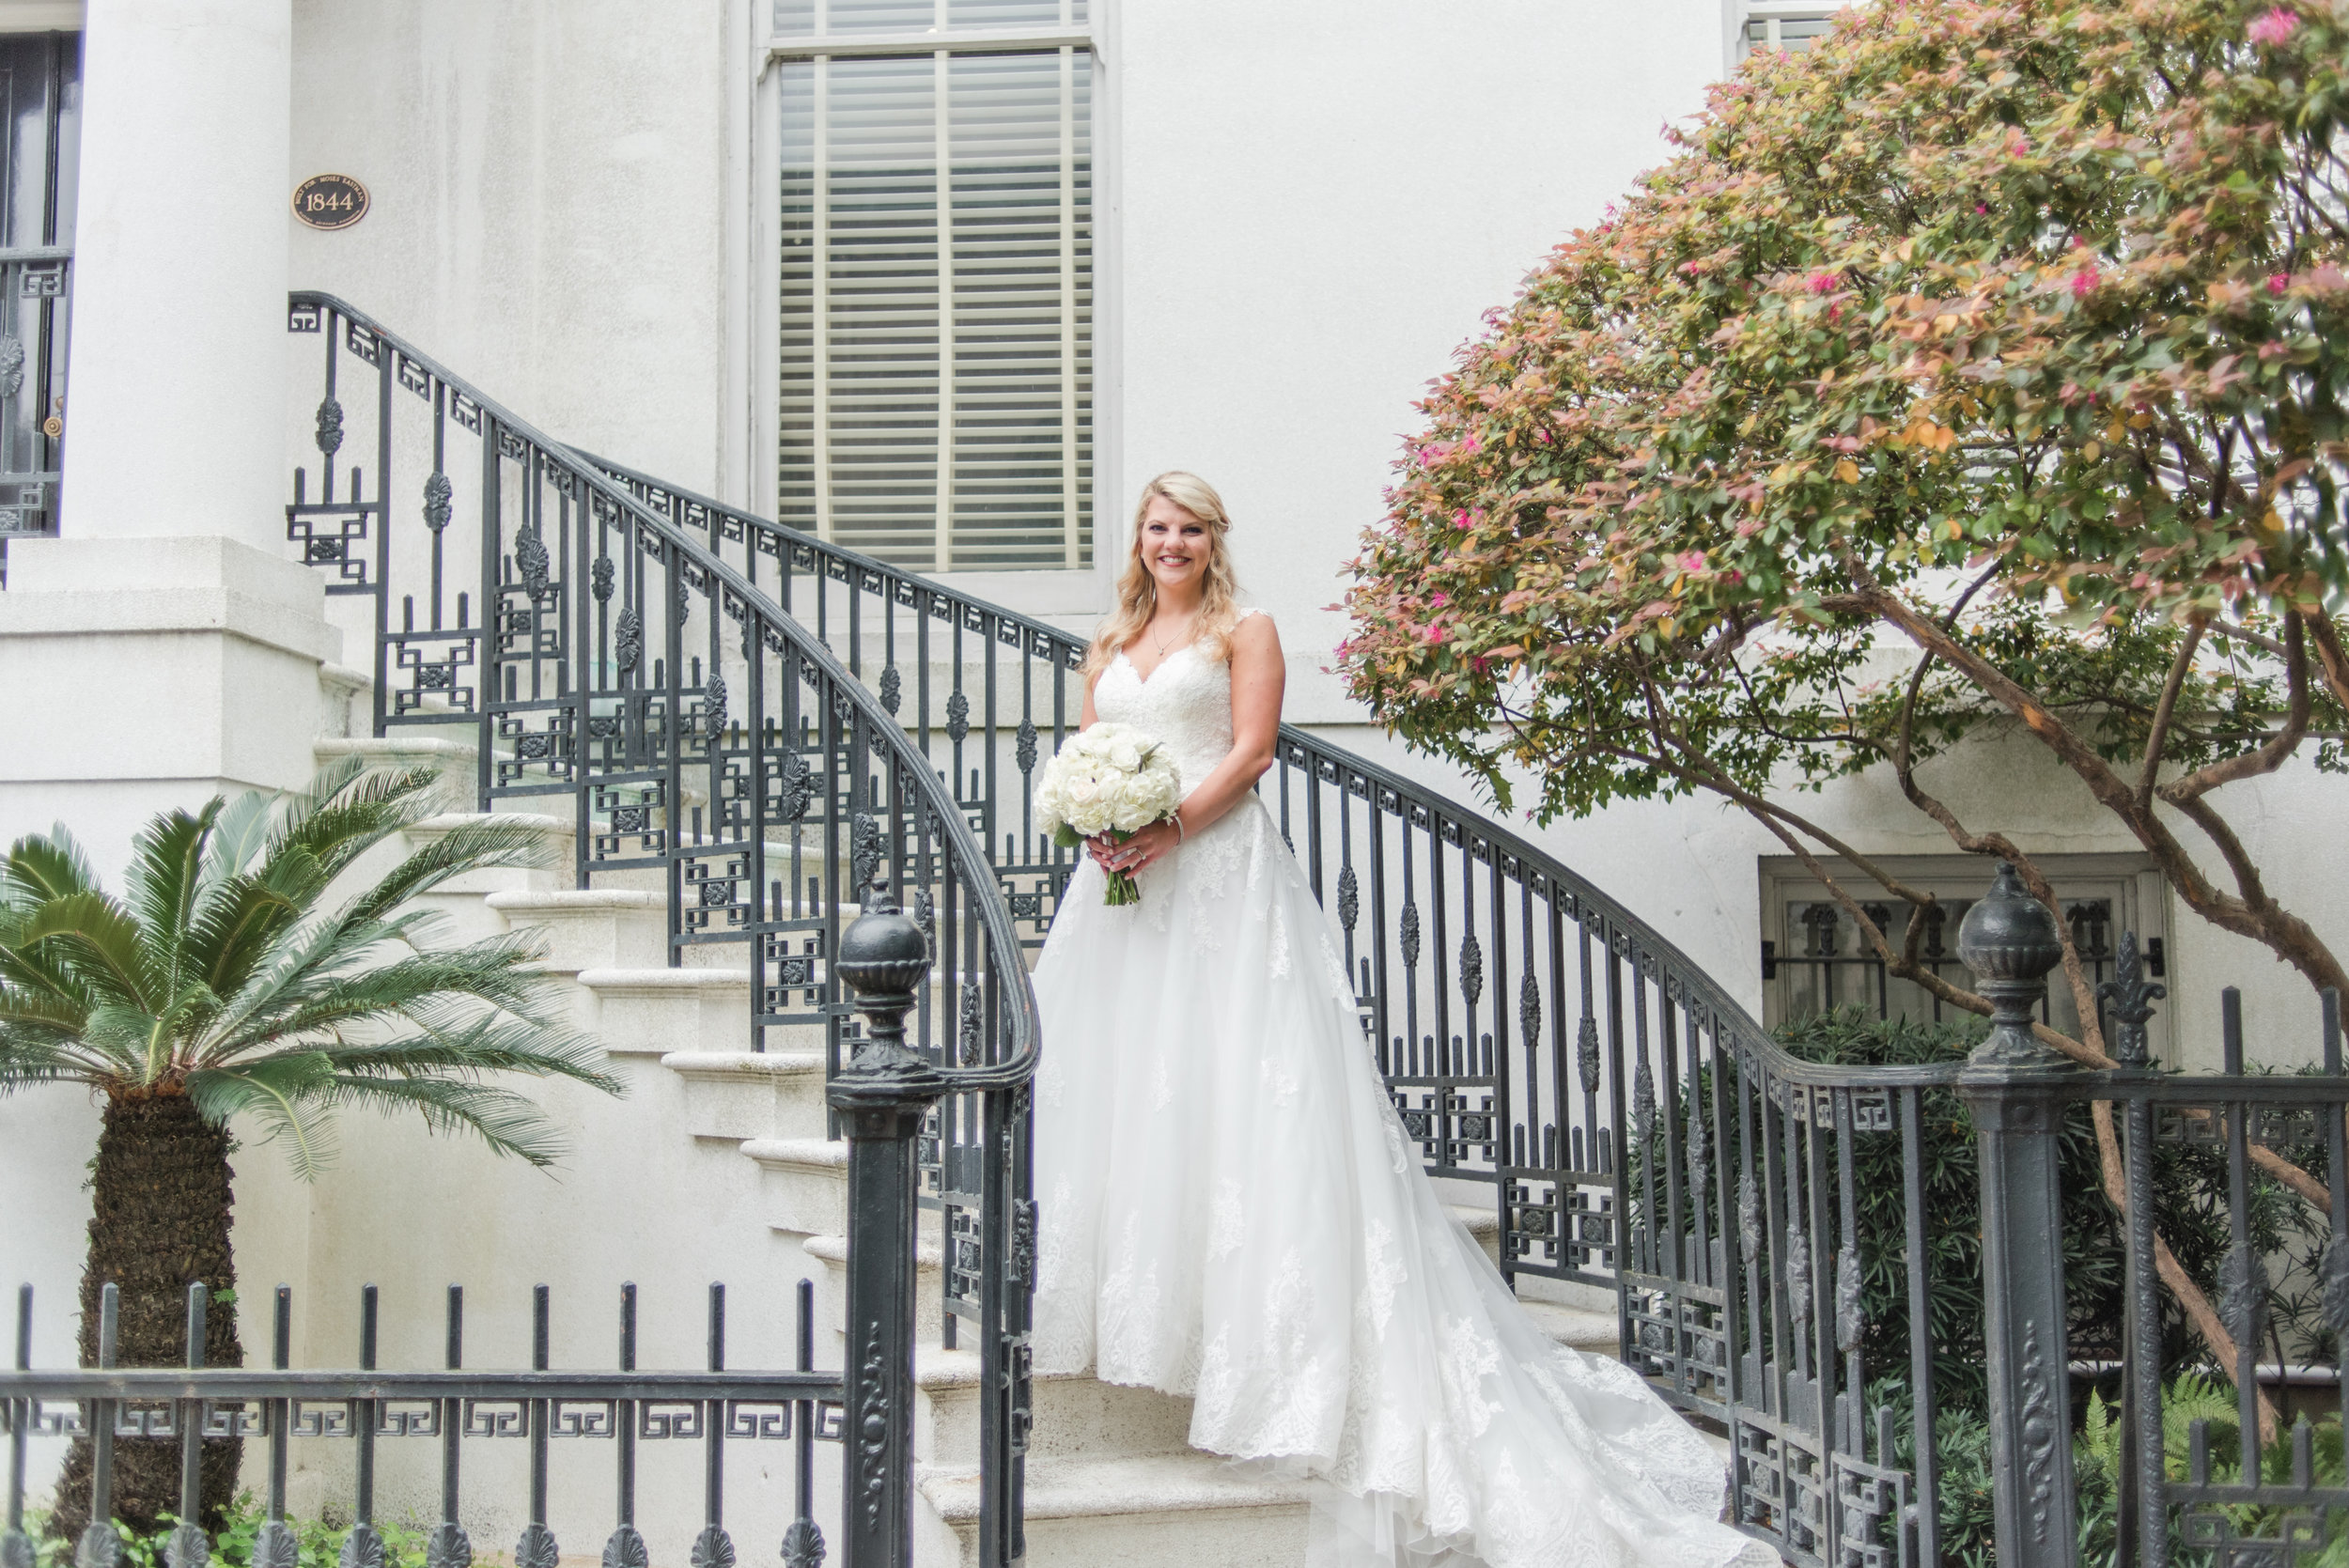 How gorgeous is Kayla in her wedding dress?! We're so obsessed with this picture!!